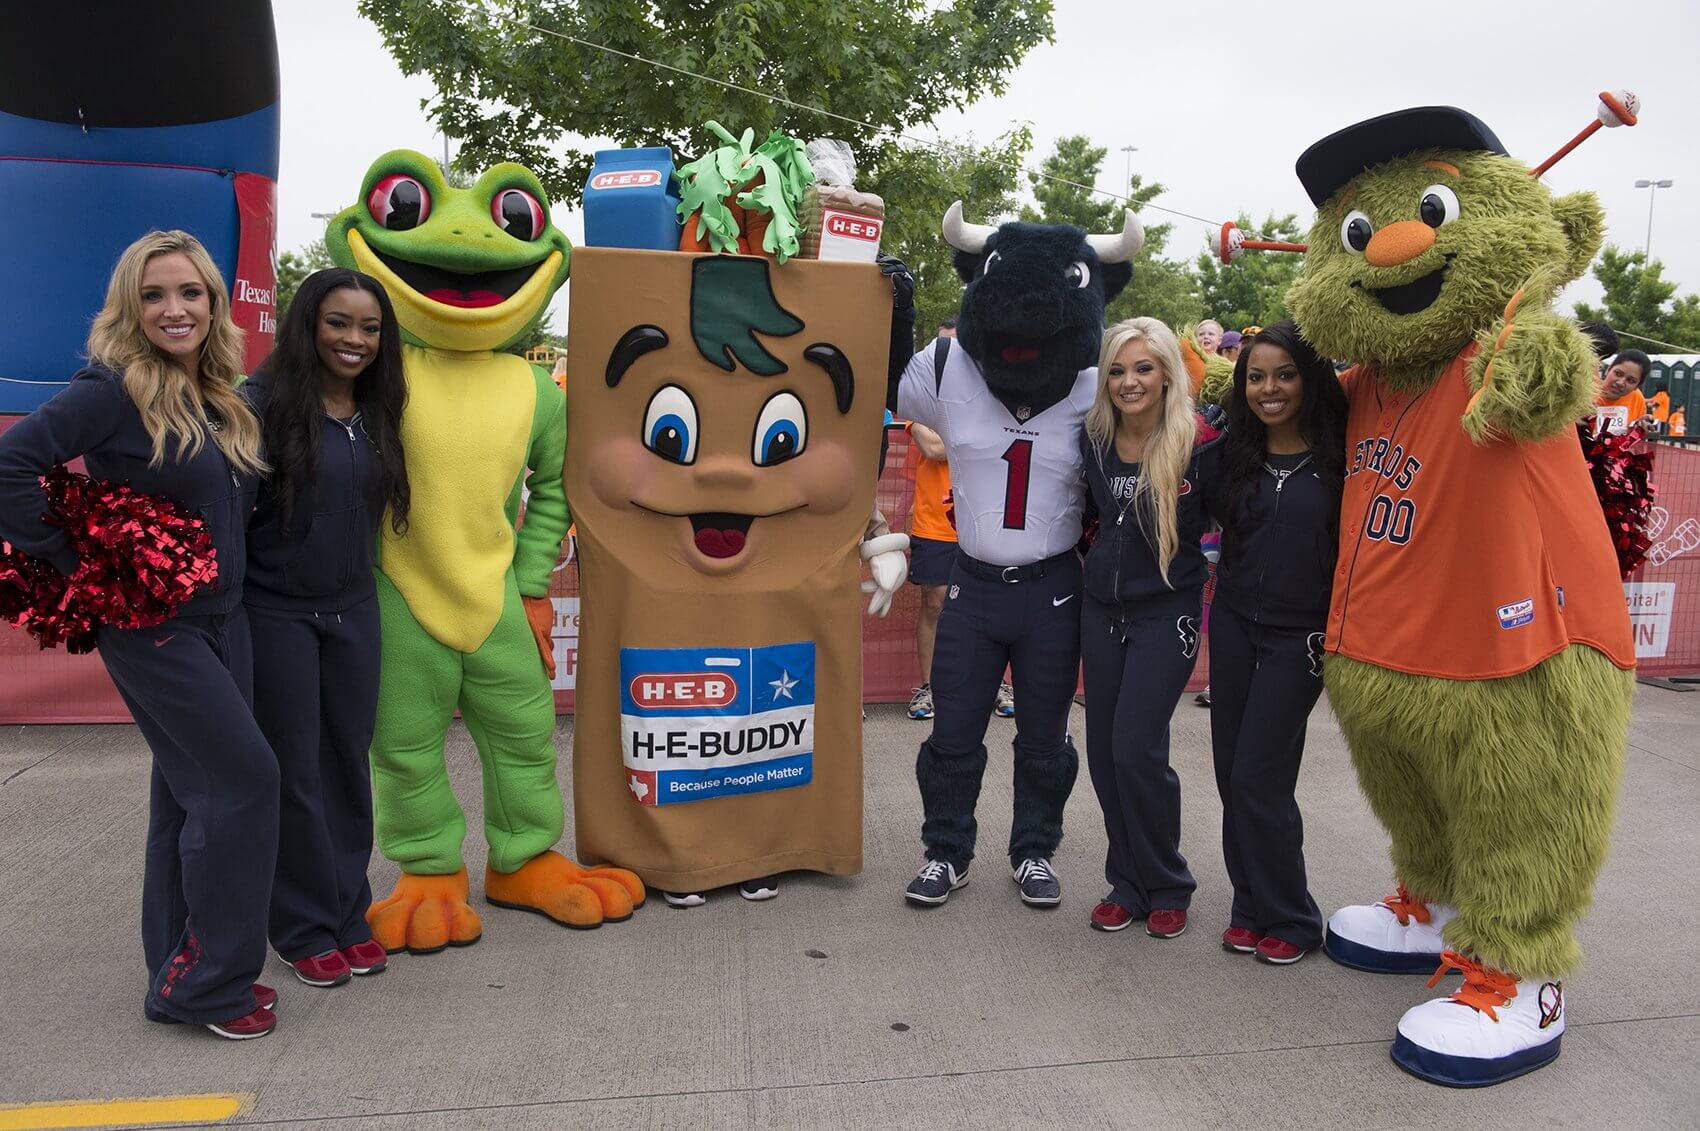 Houston Texans Cheerleaders, Toro, Orbit, H-E-Buddy, and the Rainforest Café Frog posed before the race began (Credit: Paul Vincent Kuntz/Texas Children's Hospital)